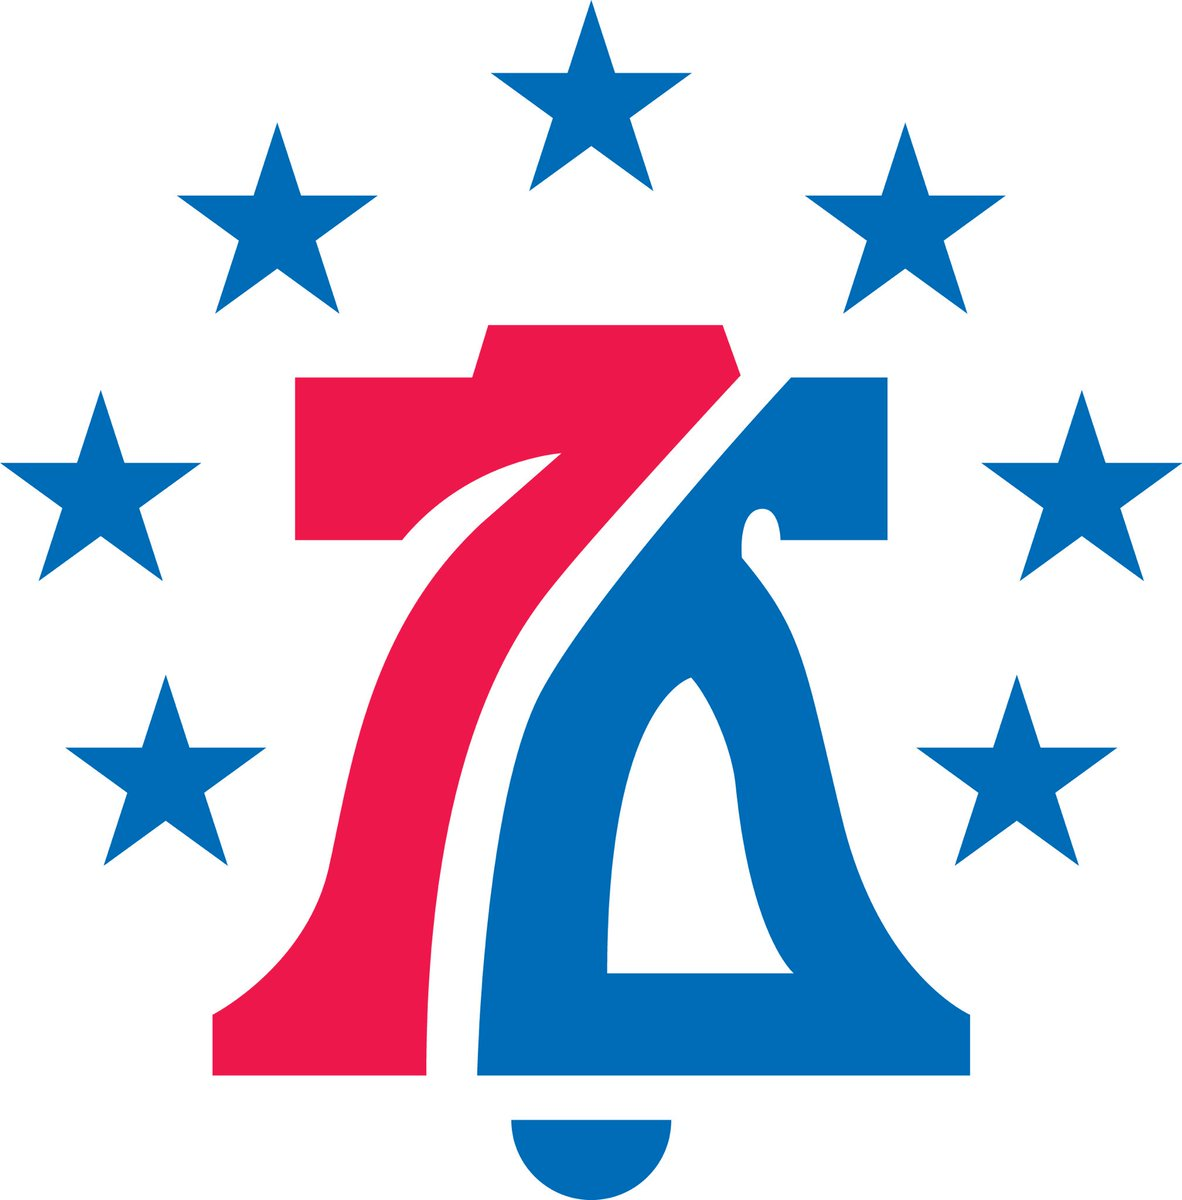 logo of 76ers gaming club the sixers nba2k esports team has logo rh scoopnest com